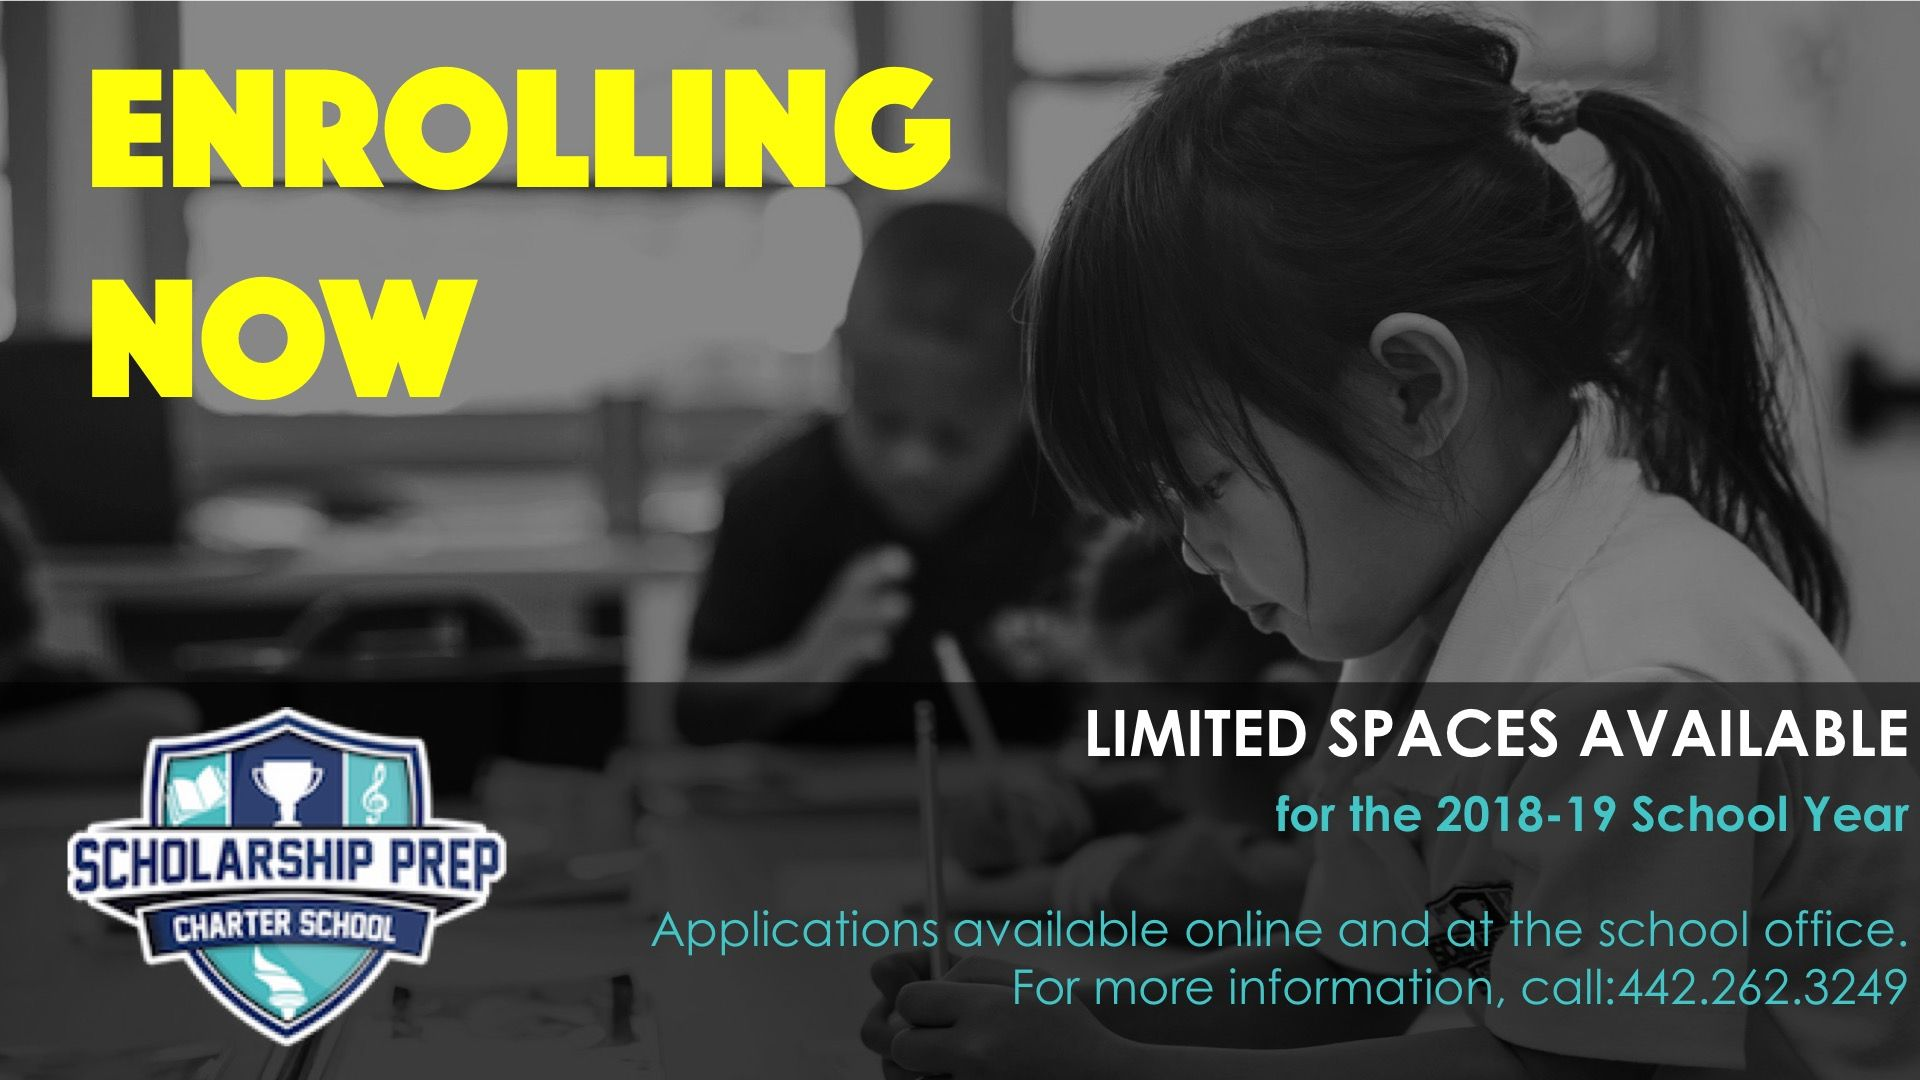 Enrolling Now for the 2018-19 School Year